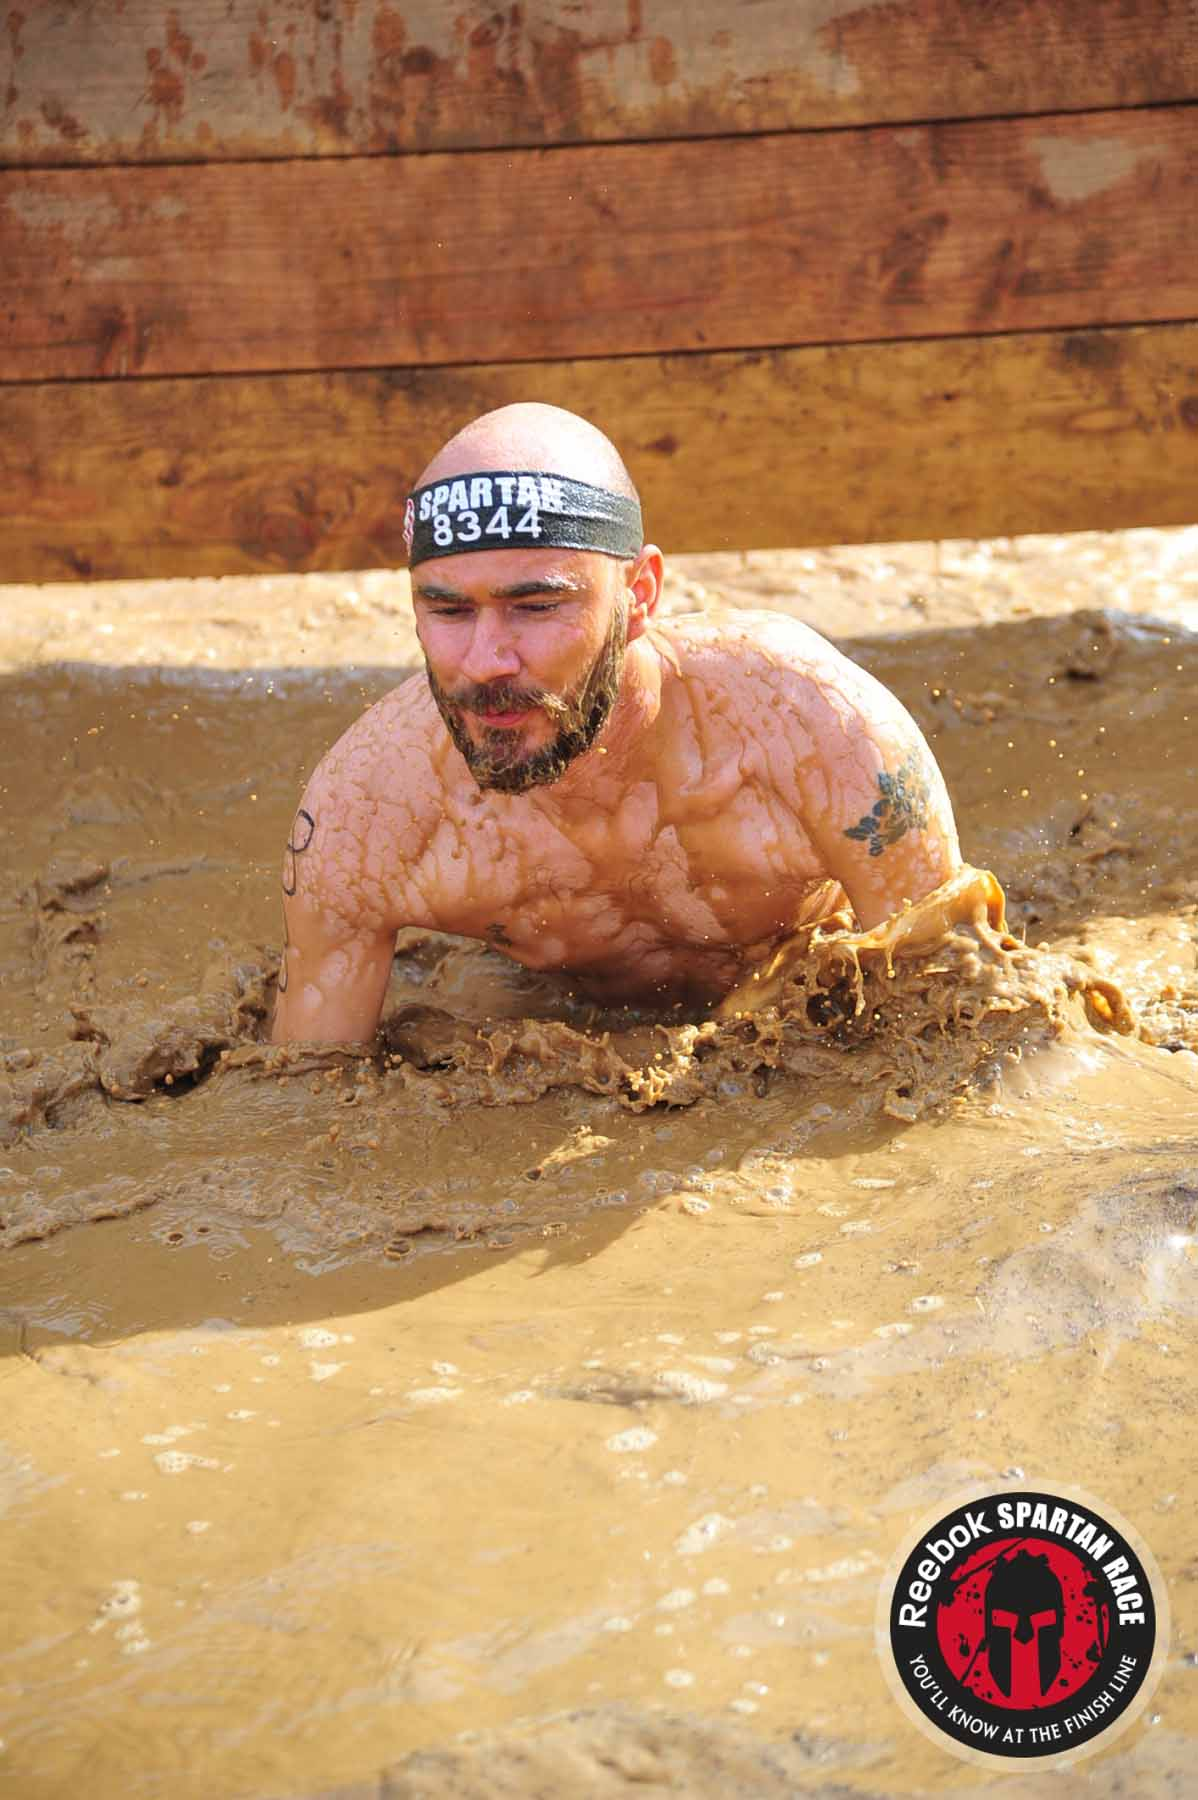 Spartan Sprint,mud obstacle